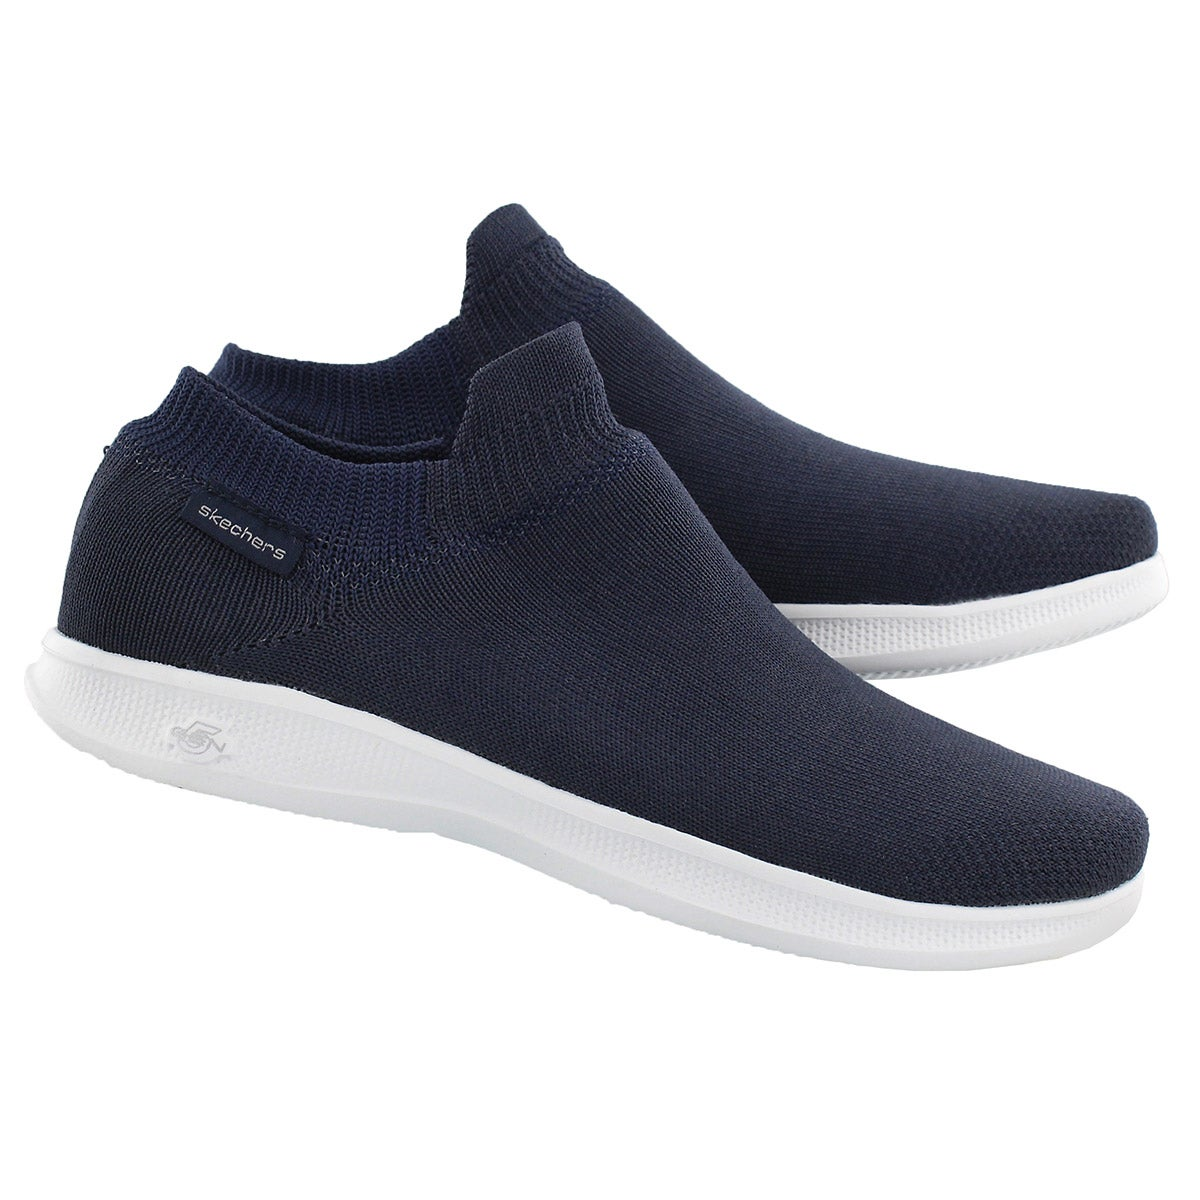 Lds GOStep Lite Ultrasock navy slip on